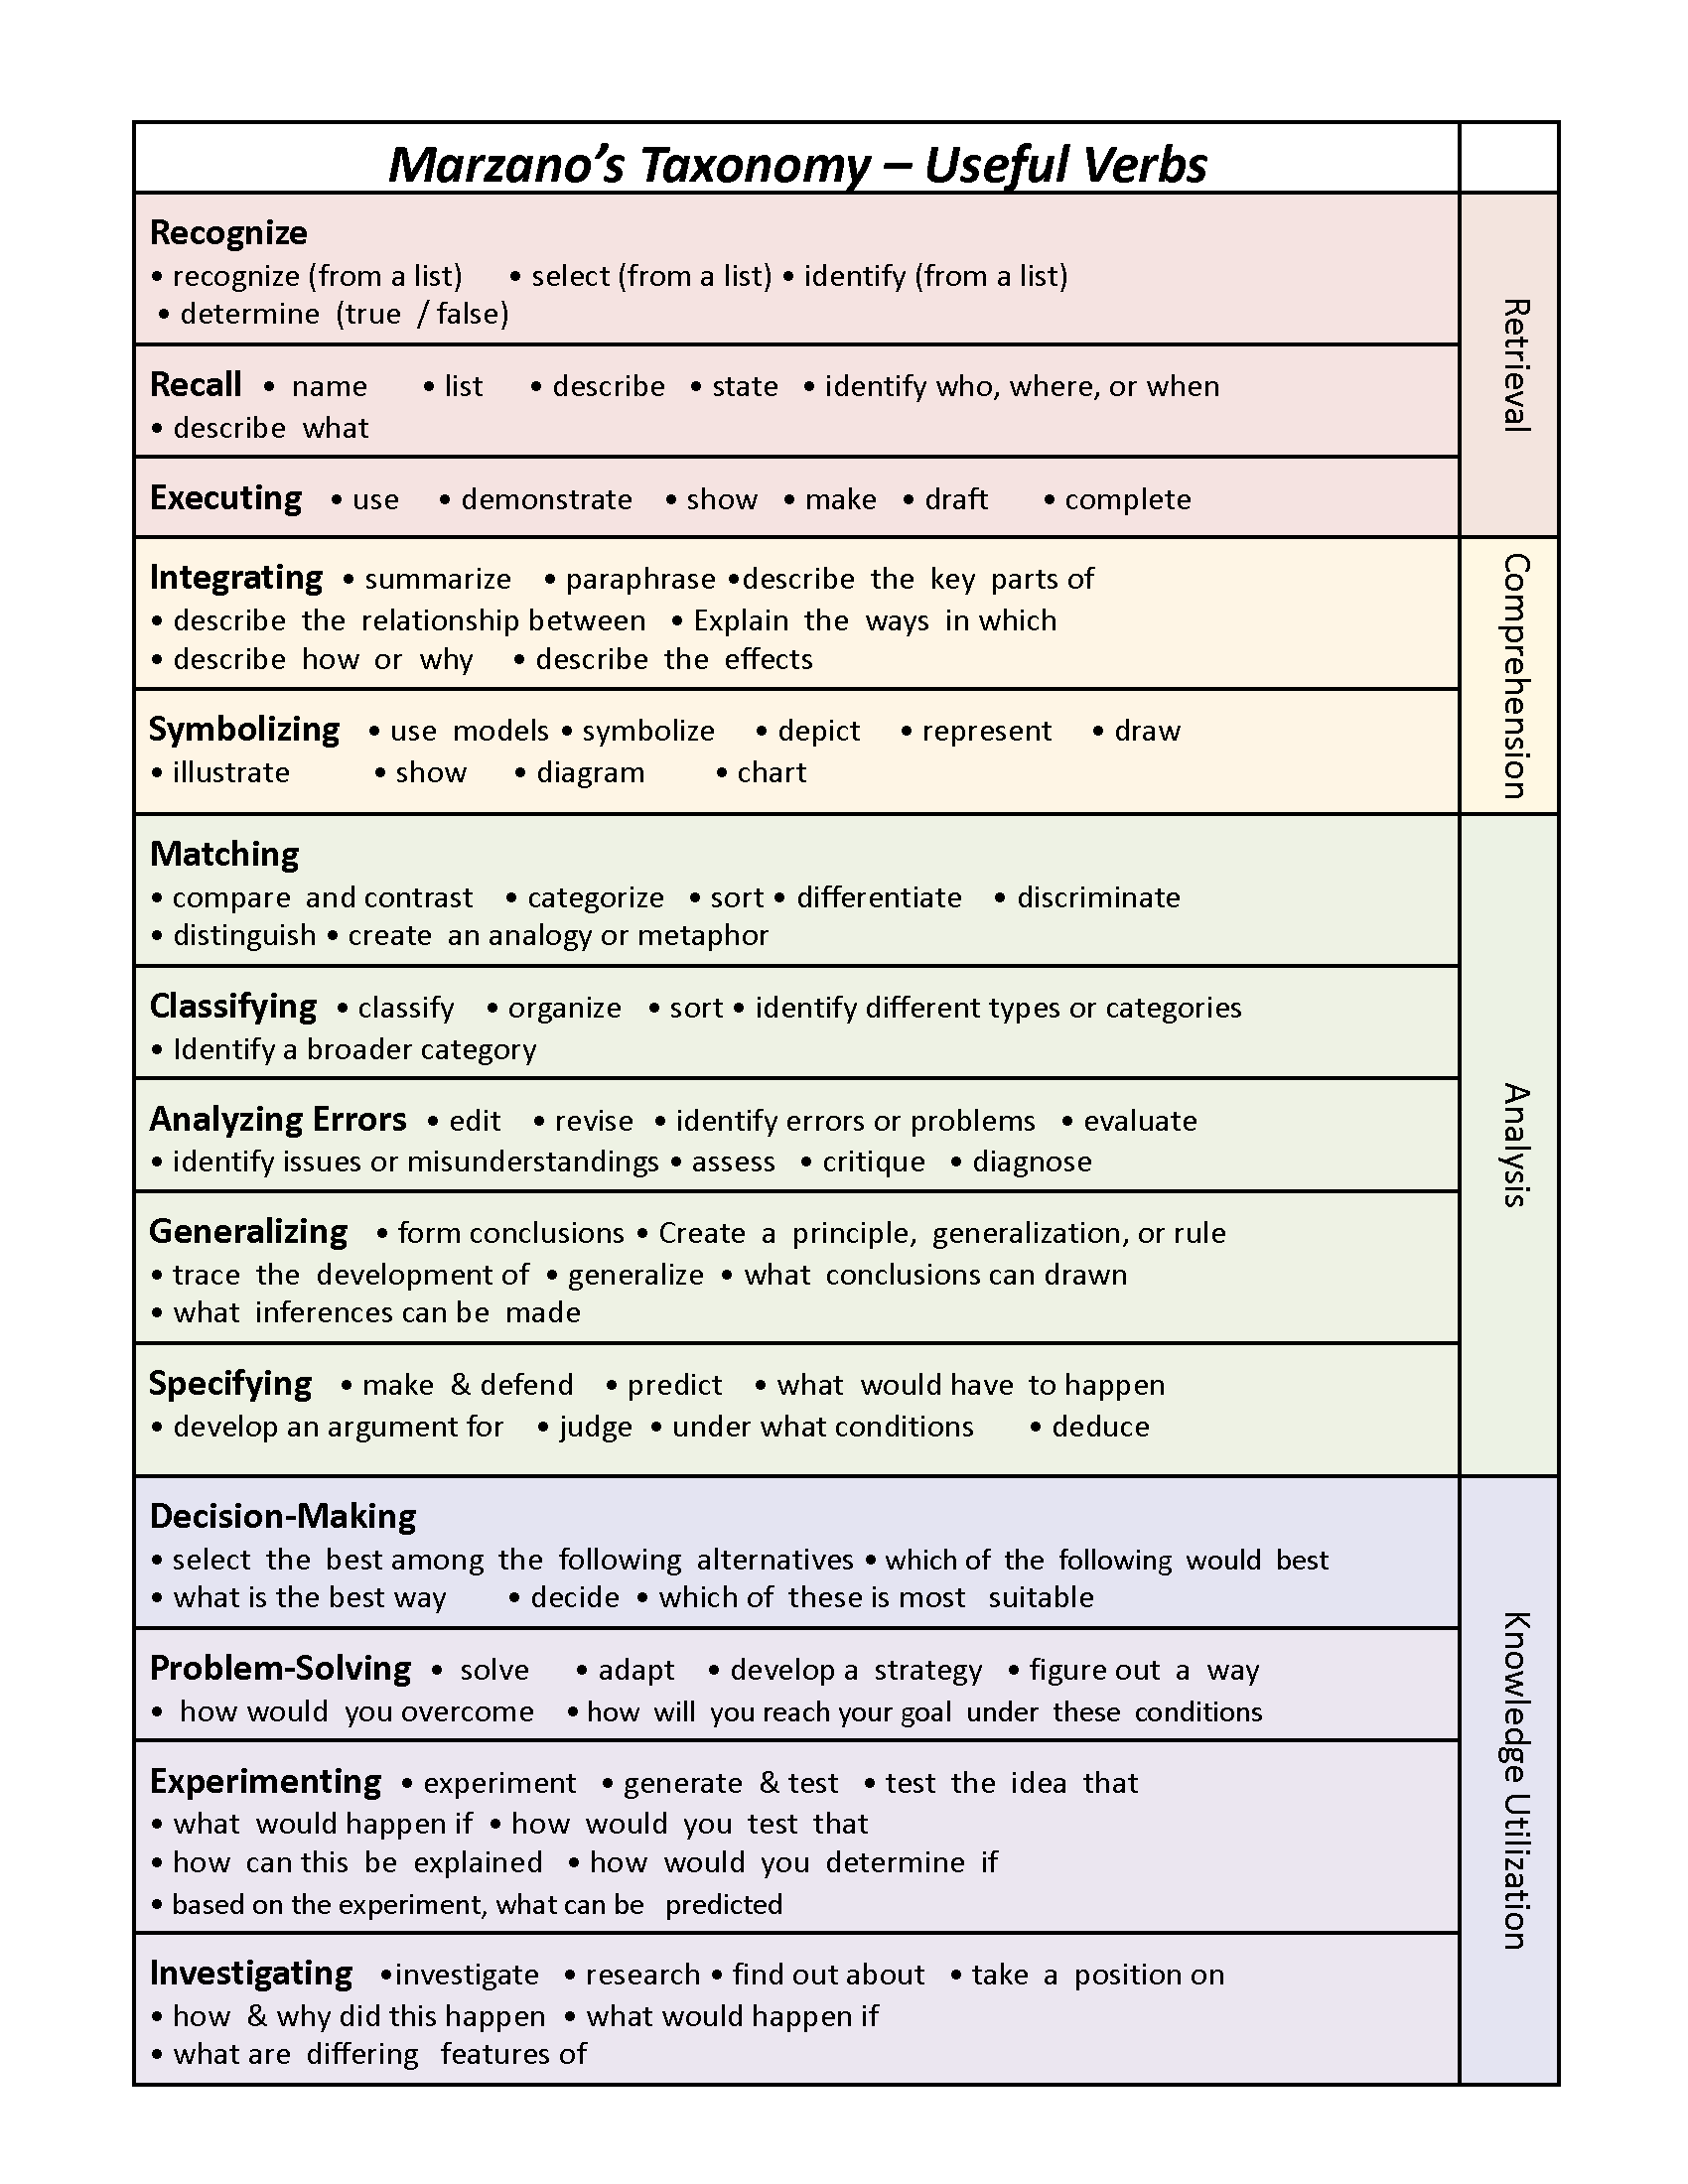 5 Tips For Writing Marzano Scales